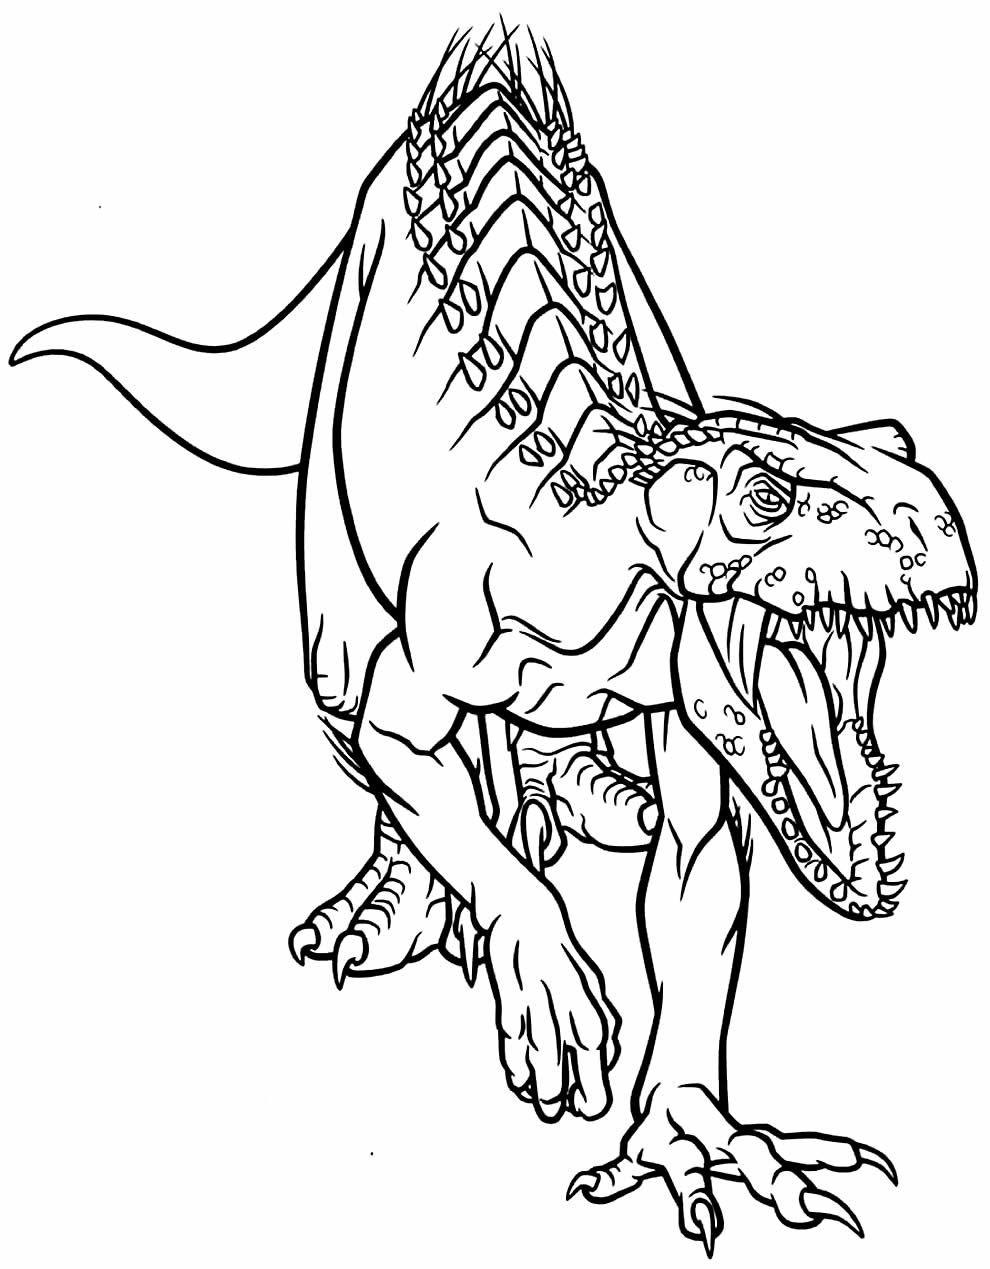 T-Rex drawing to color